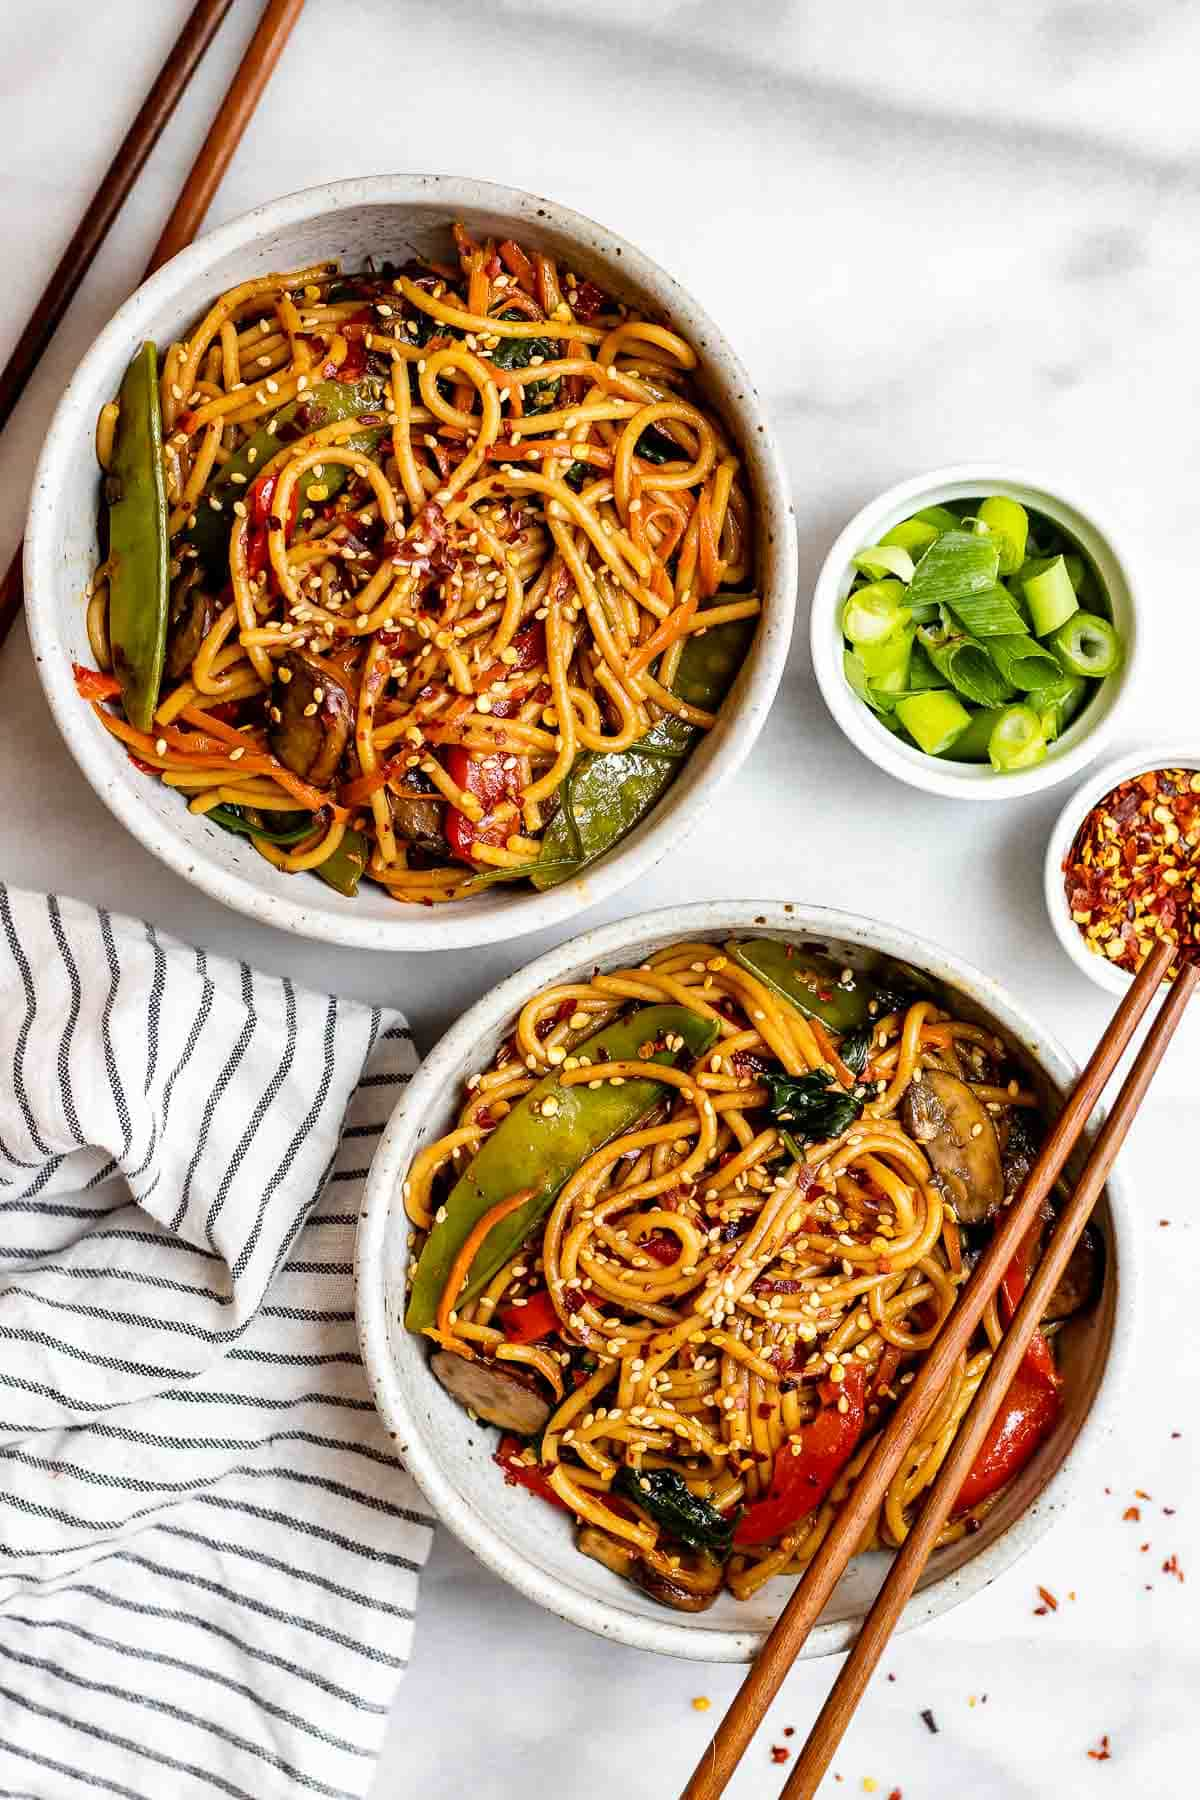 Two bowls with lo mein and sesame seeds on top.